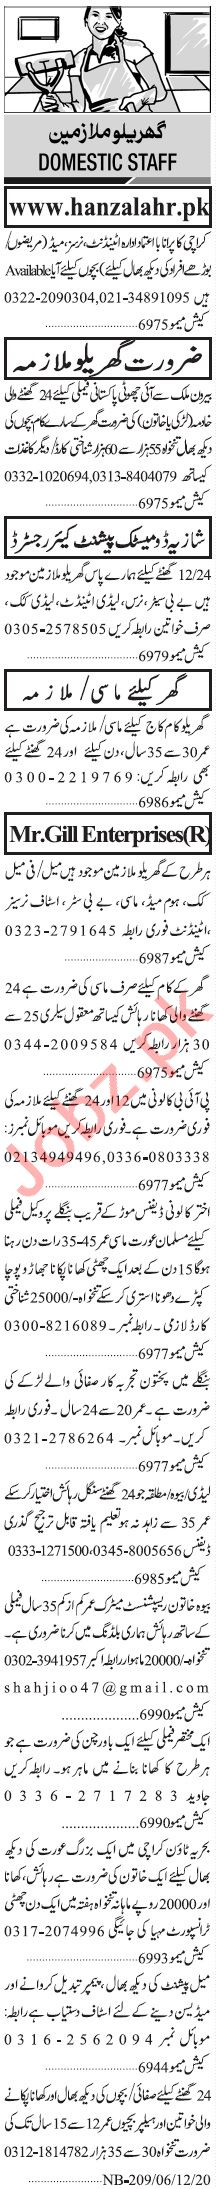 Jang Sunday Classified Ads 6 Dec 2020 for Domestic Staff